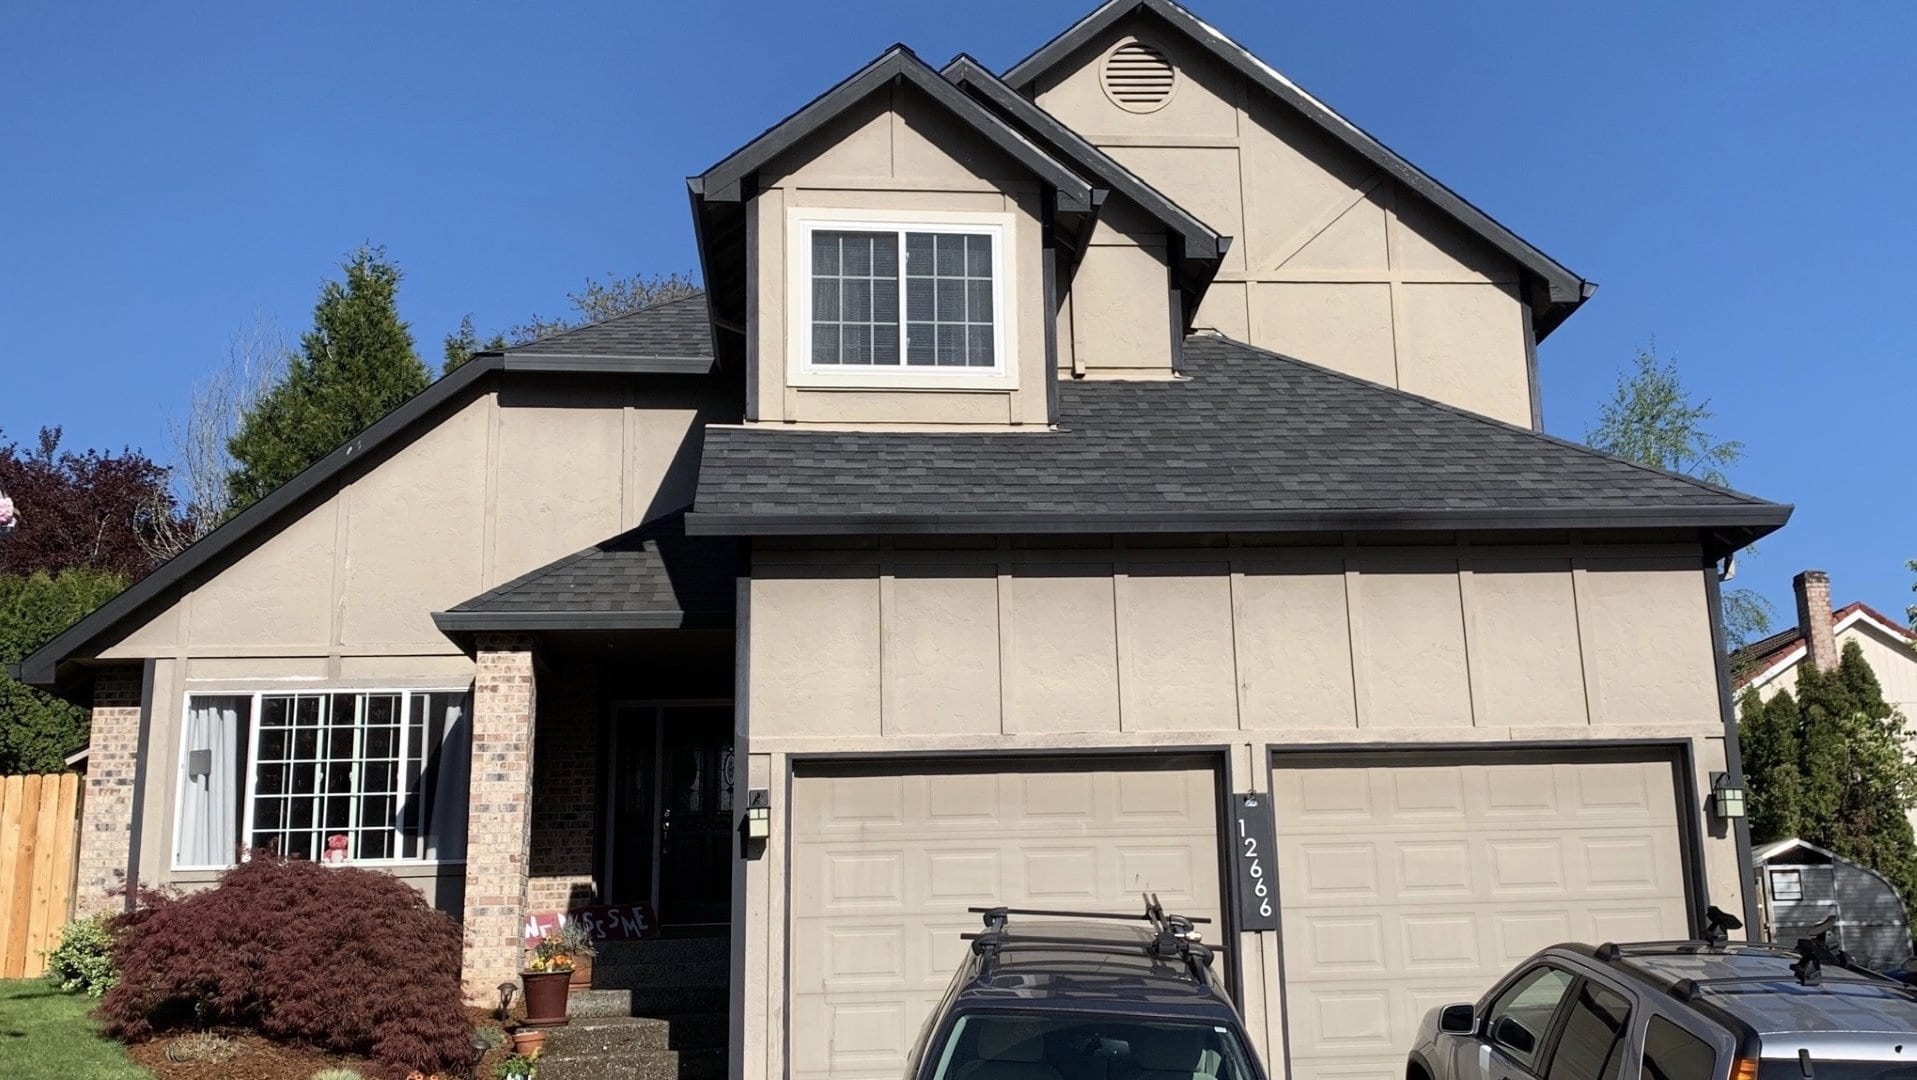 Before with Old Wood T1-11 Panel Siding on home in Clackamas, OR